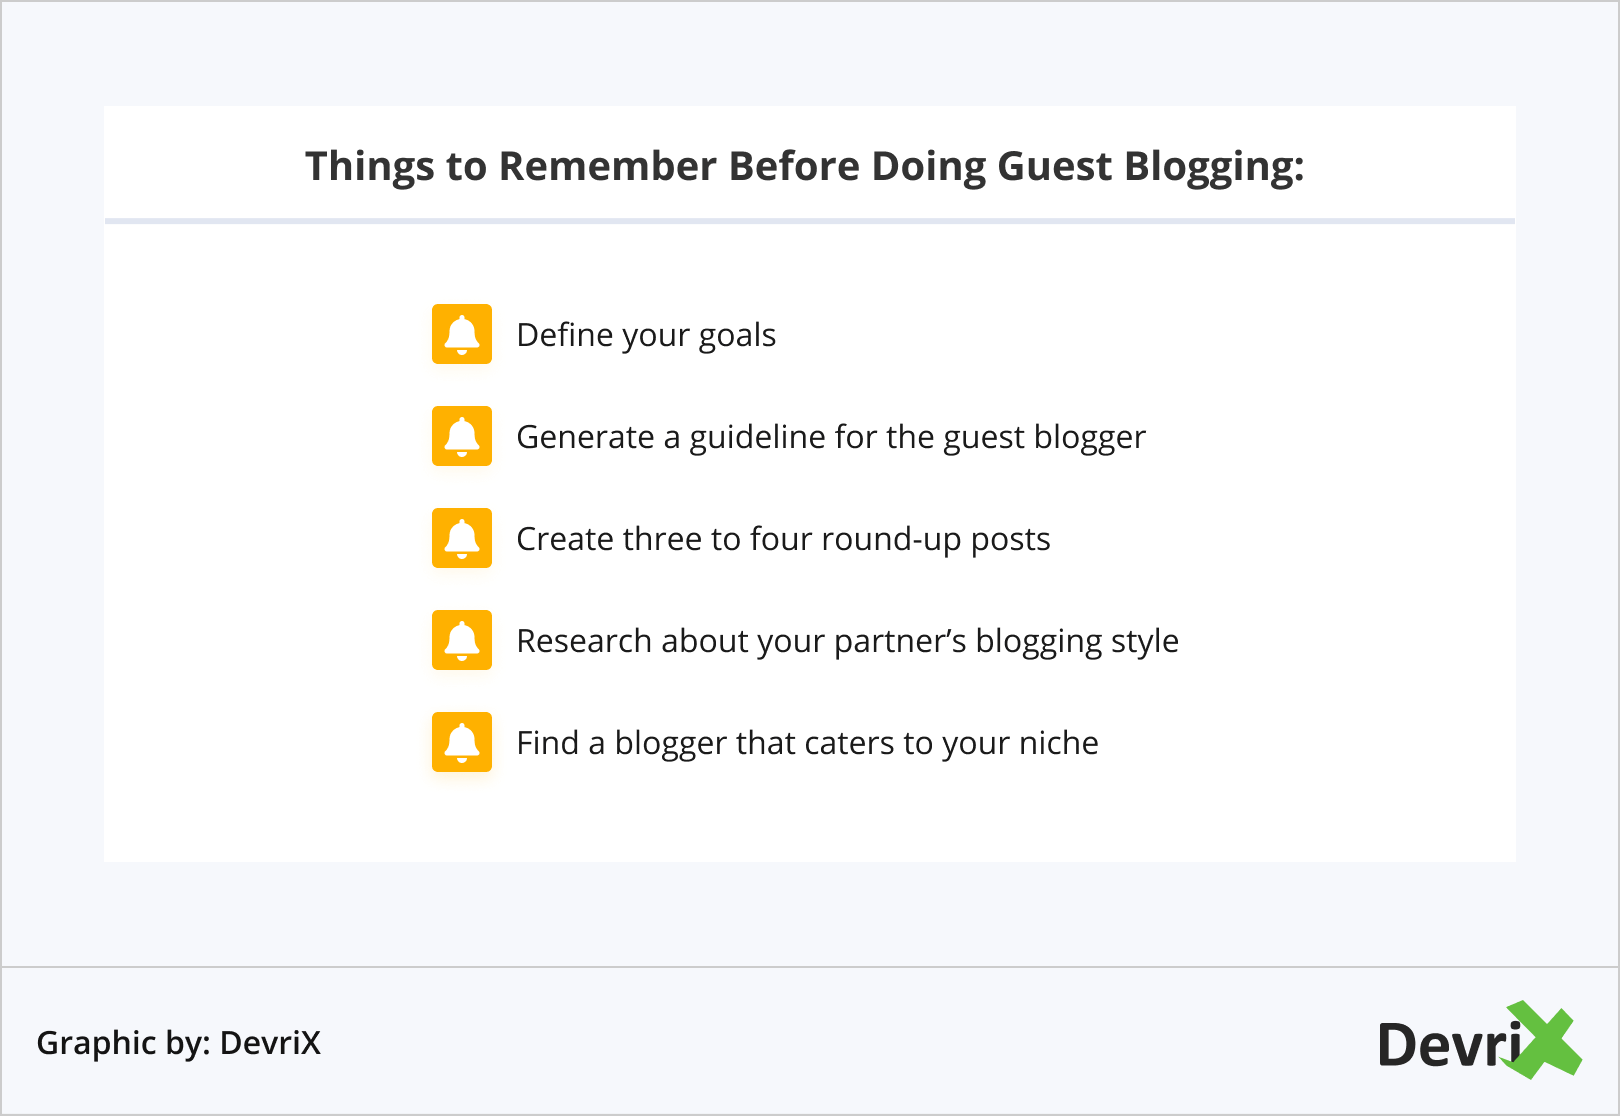 Things to Remember Before Doing Guest Blogging_